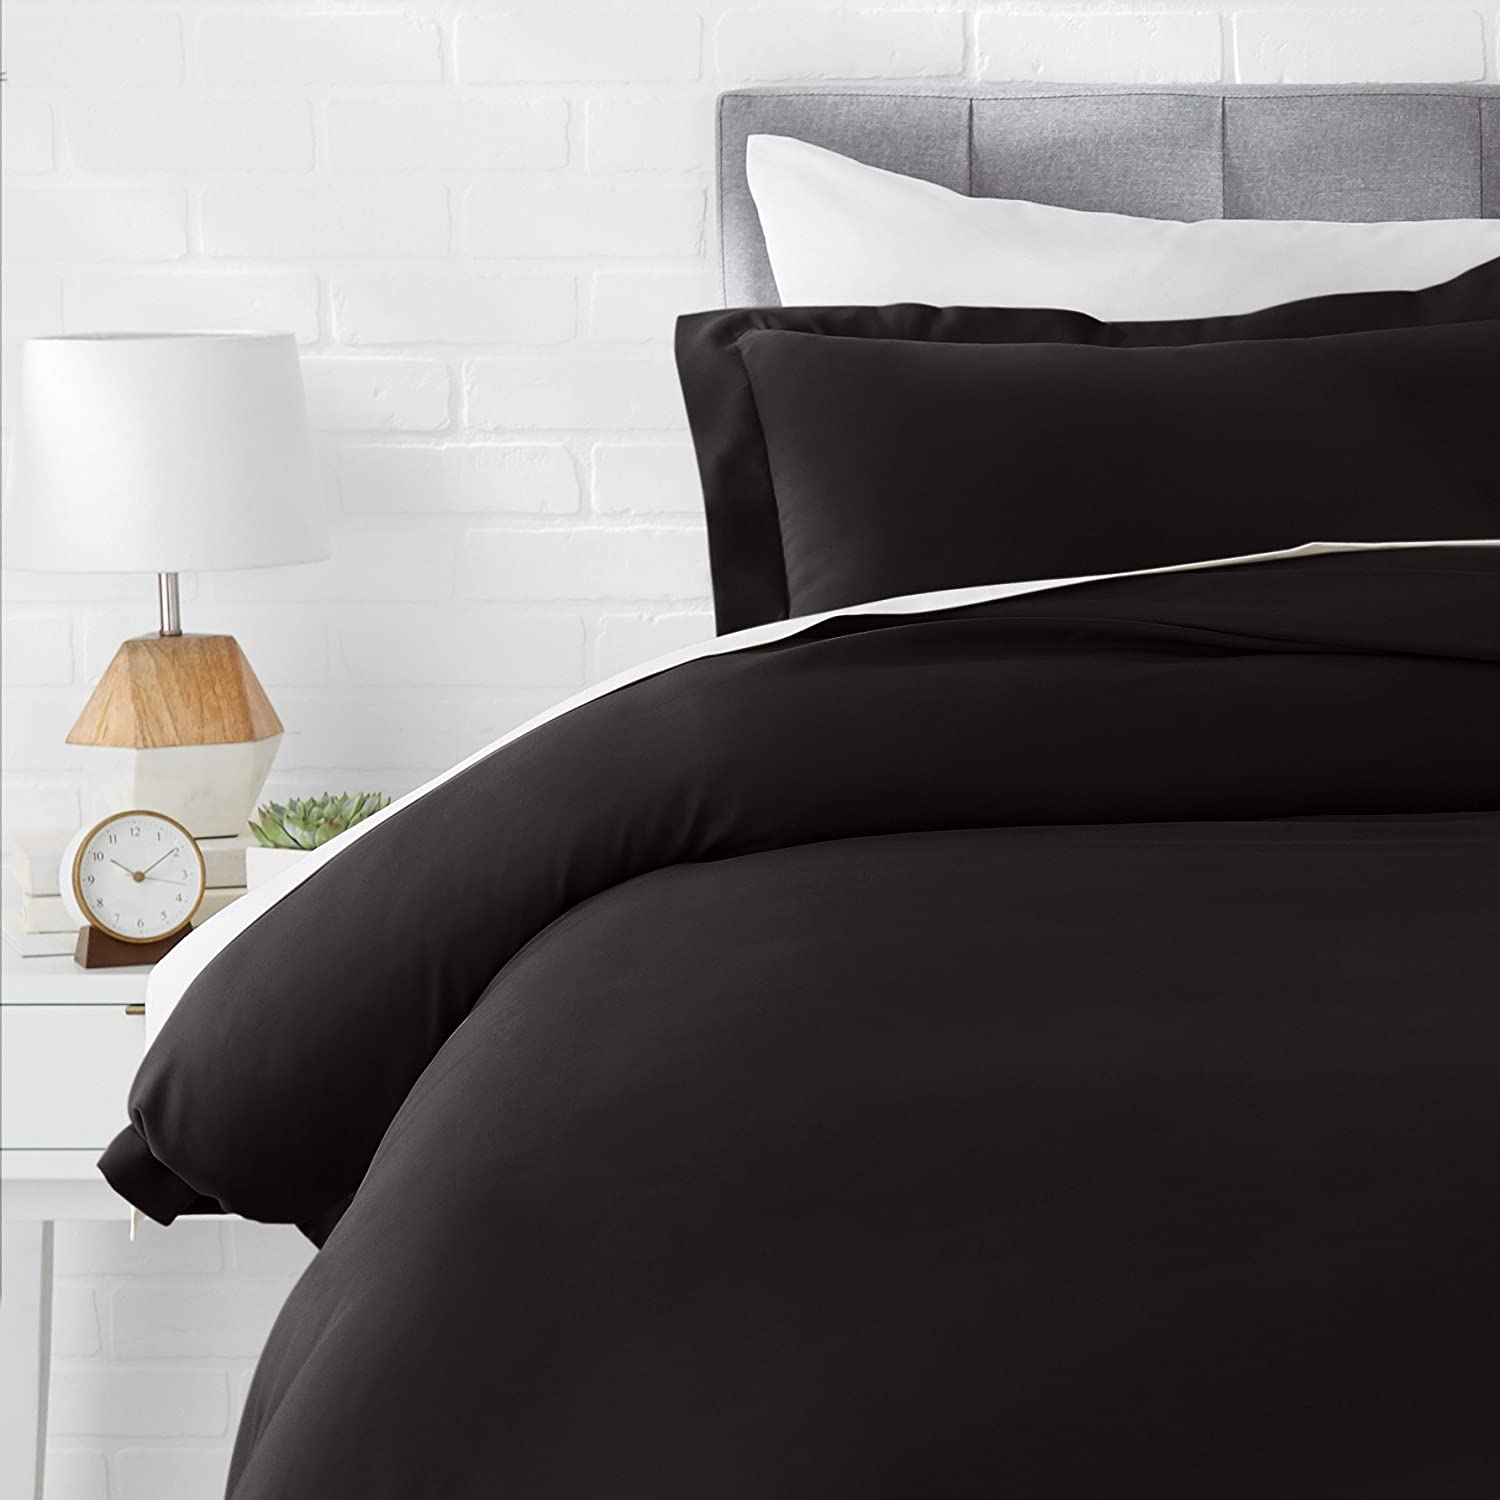 AmazonBasics Microfiber Duvet Cover Set - Lightweight and Soft - Twin/Twin XL, Black